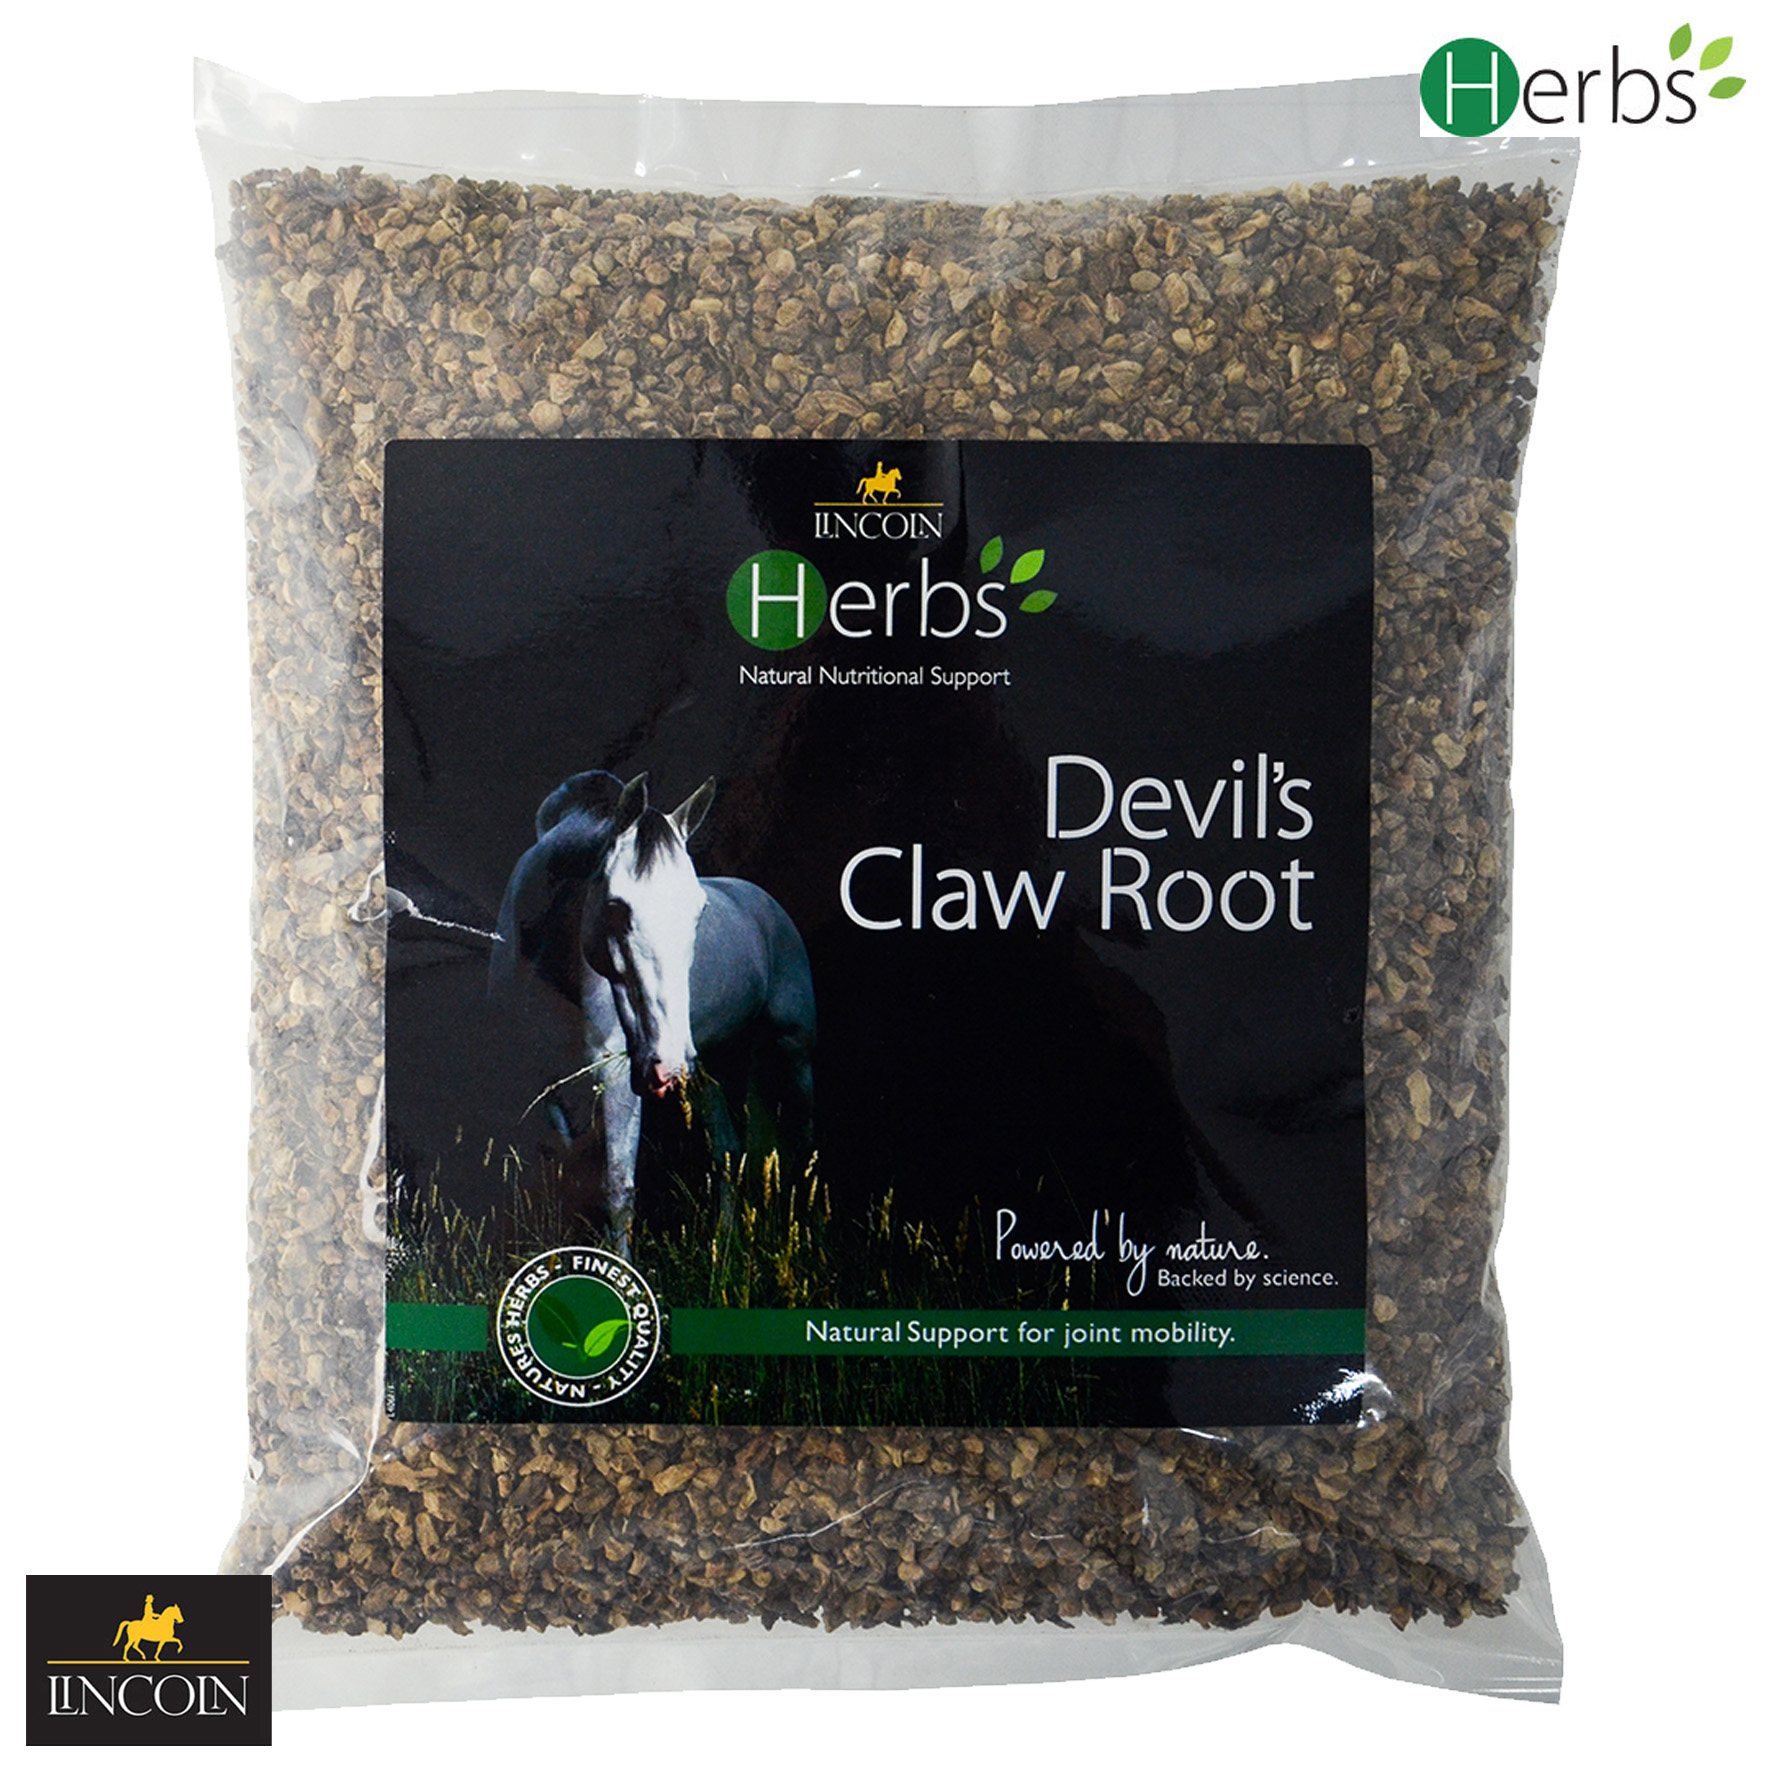 Lincoln Herbs Devil's Claw Root